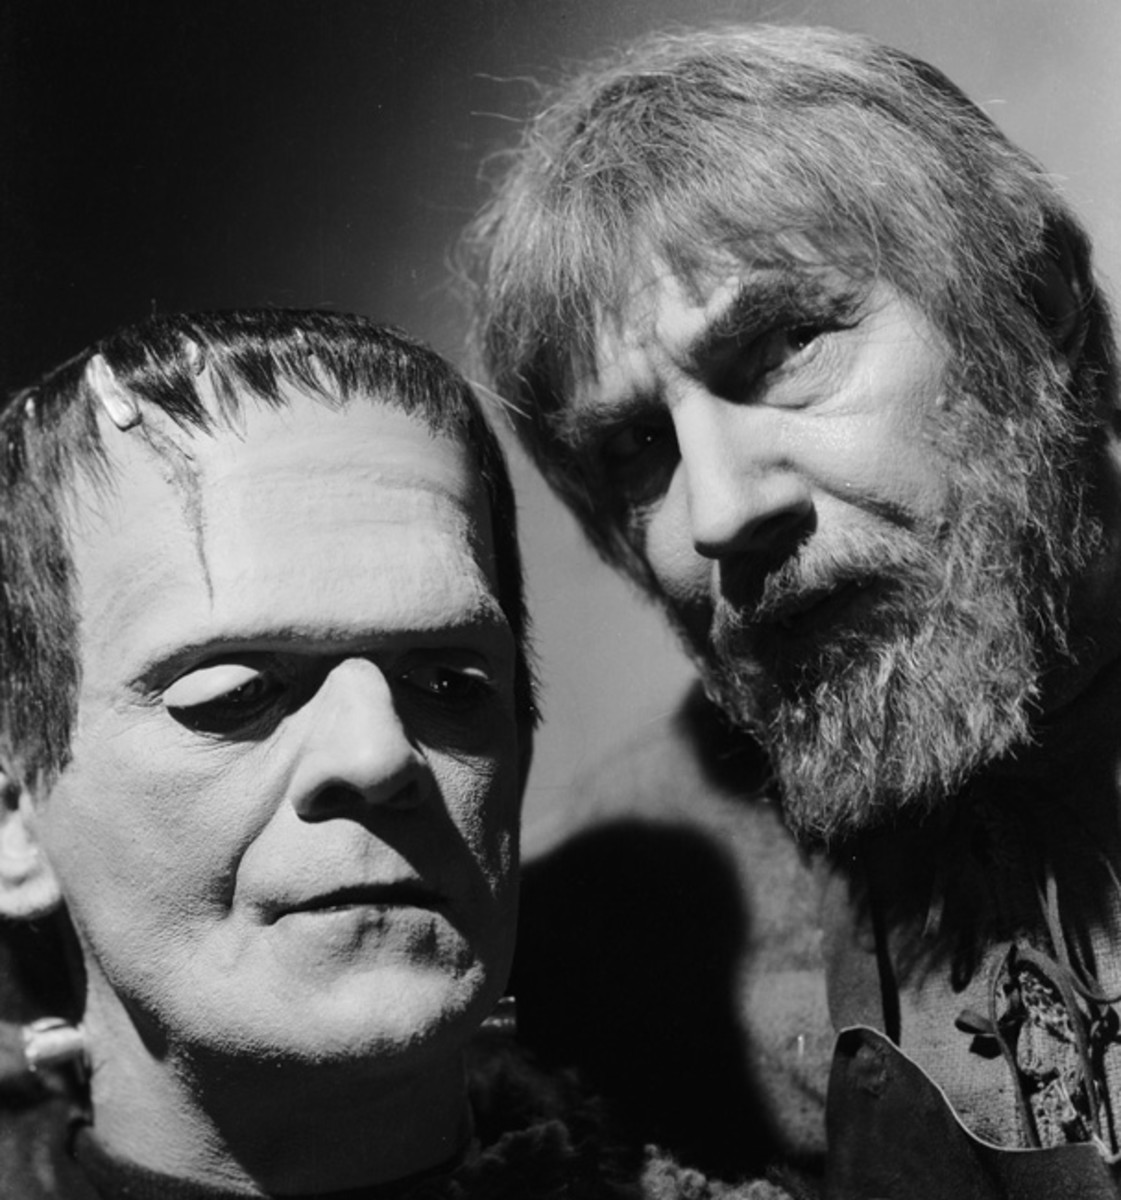 Boris Karloff as The Monster and Lugosi as the evil shepherd Ygor in Son of Frankenstein (1939). (Photo: Bettmann/Getty Images)